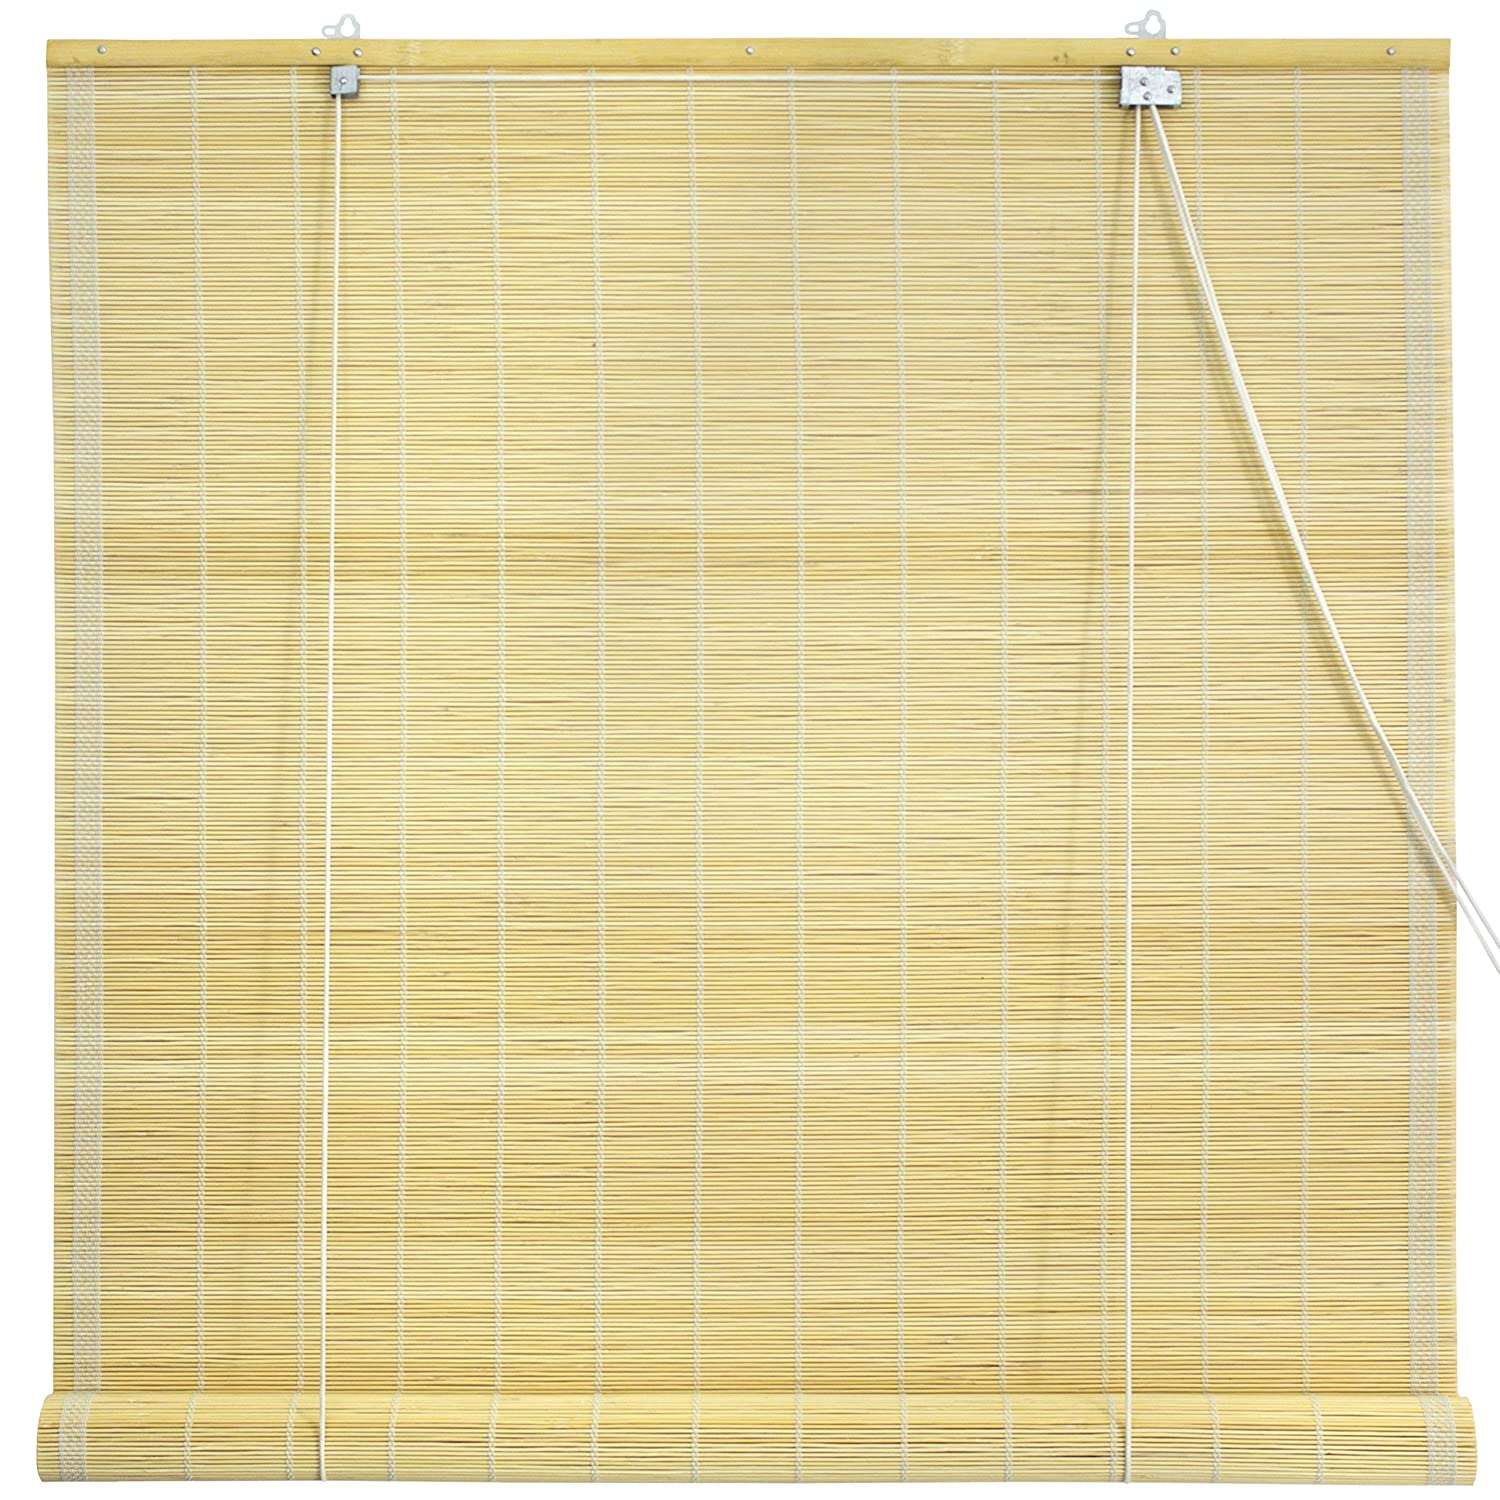 up doityourself roll ideas new bamboo with blinds blind